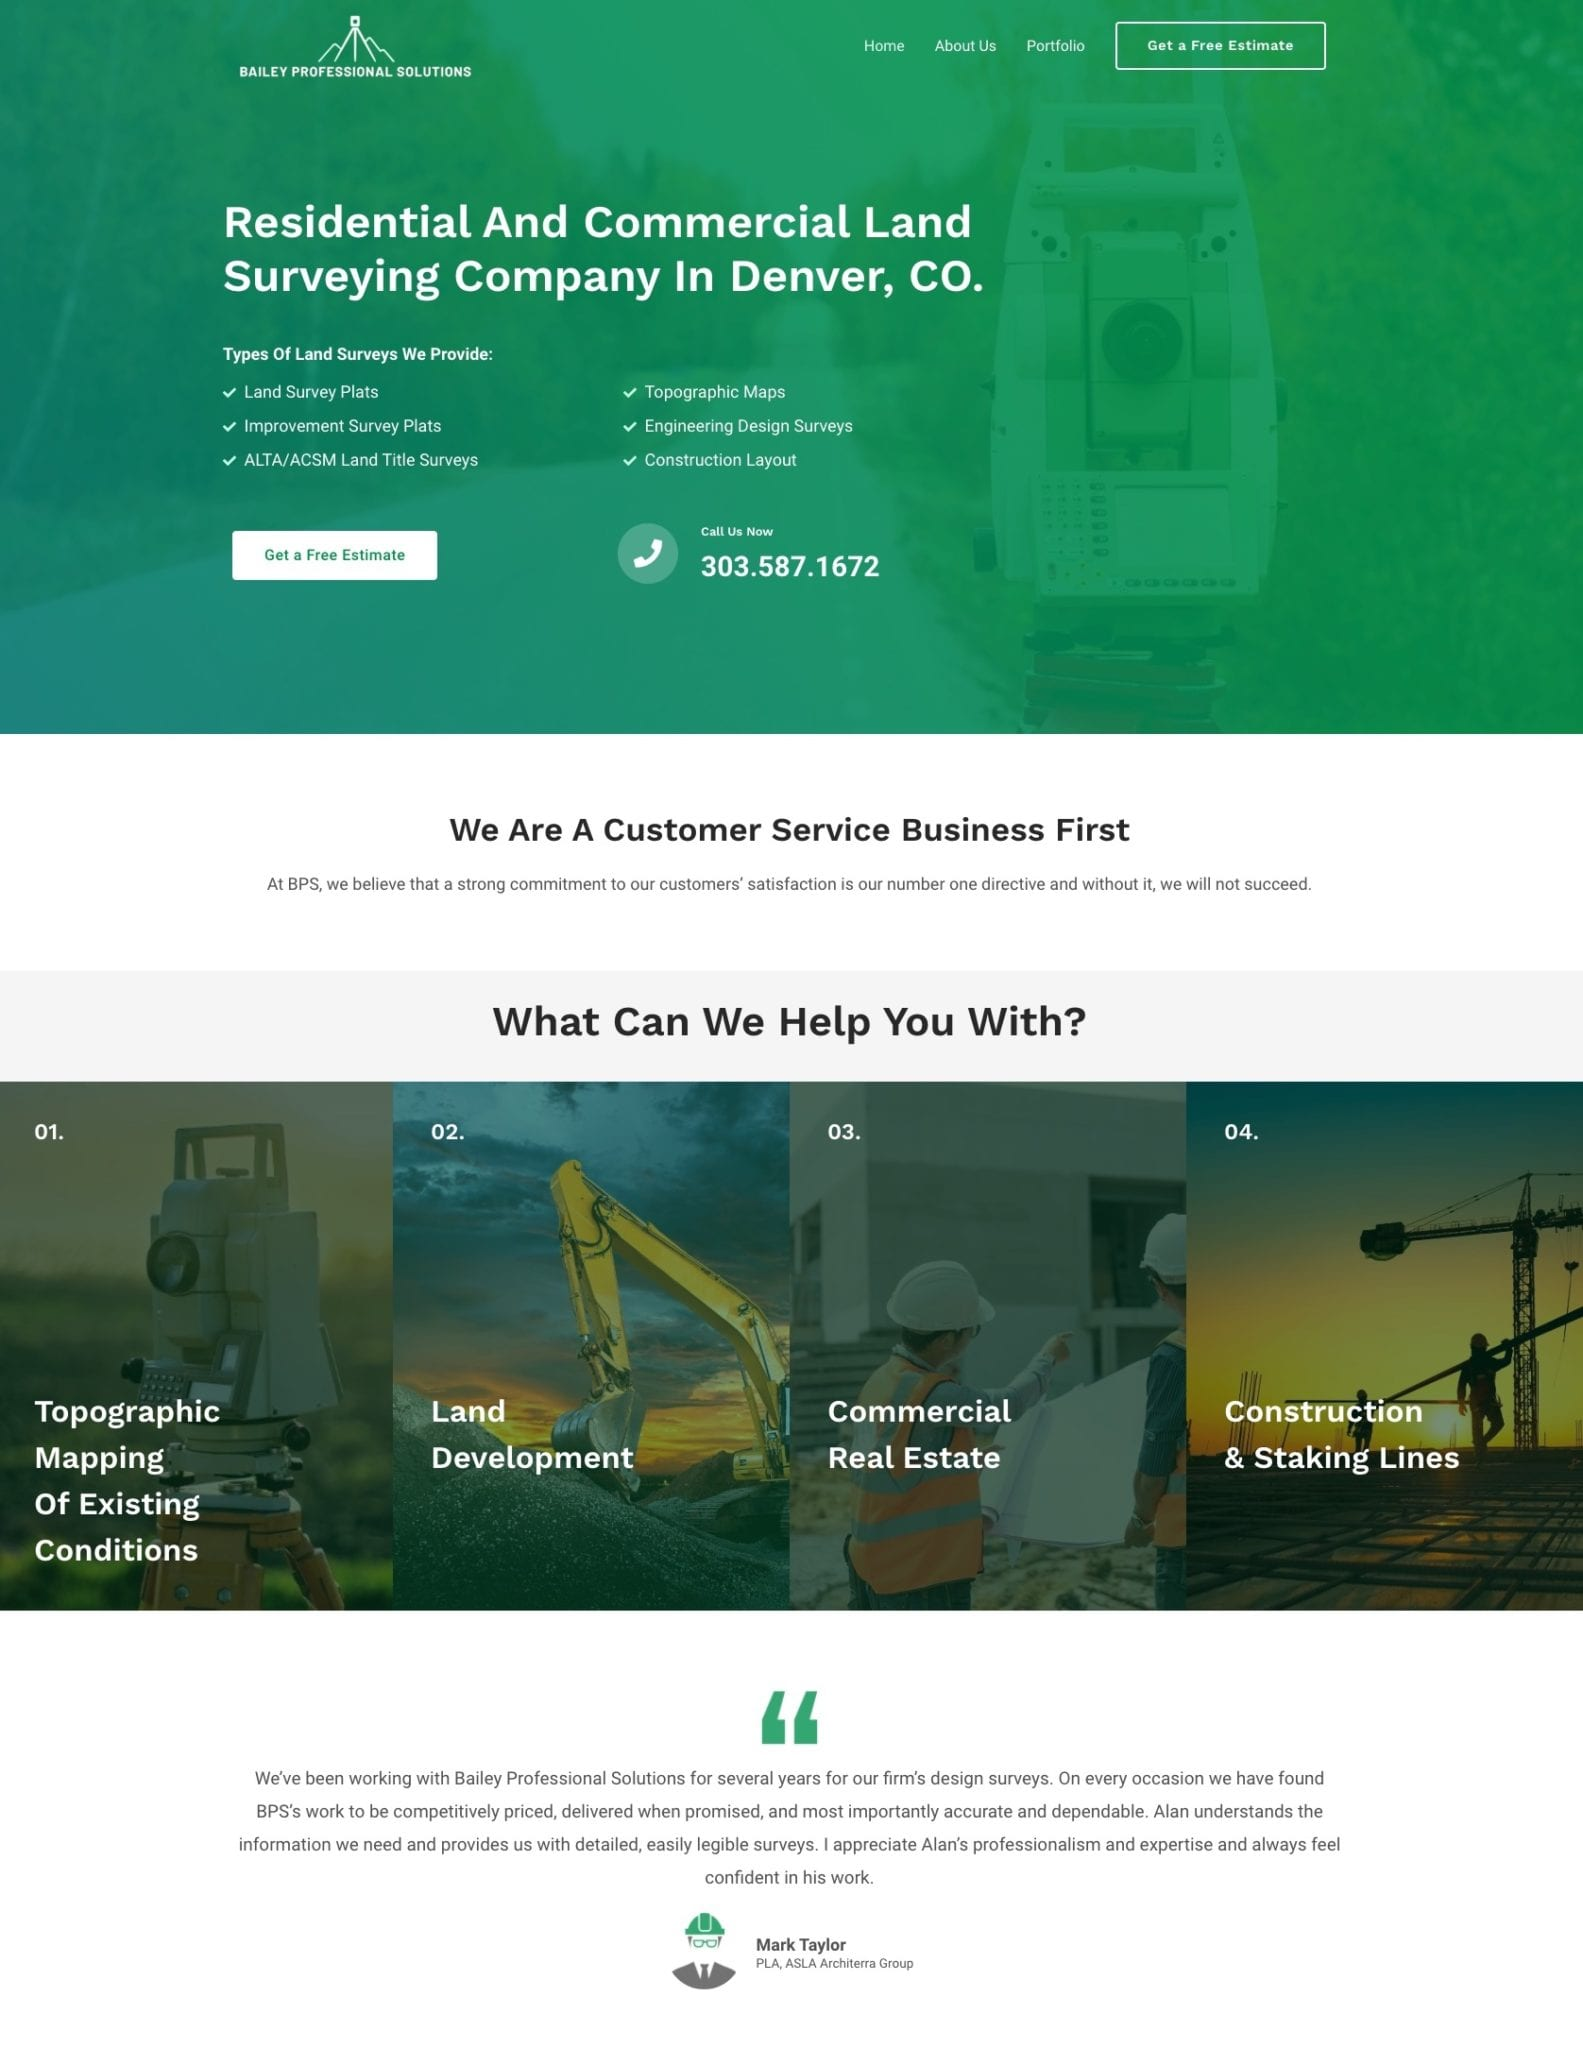 land surveying company well laid out home page design